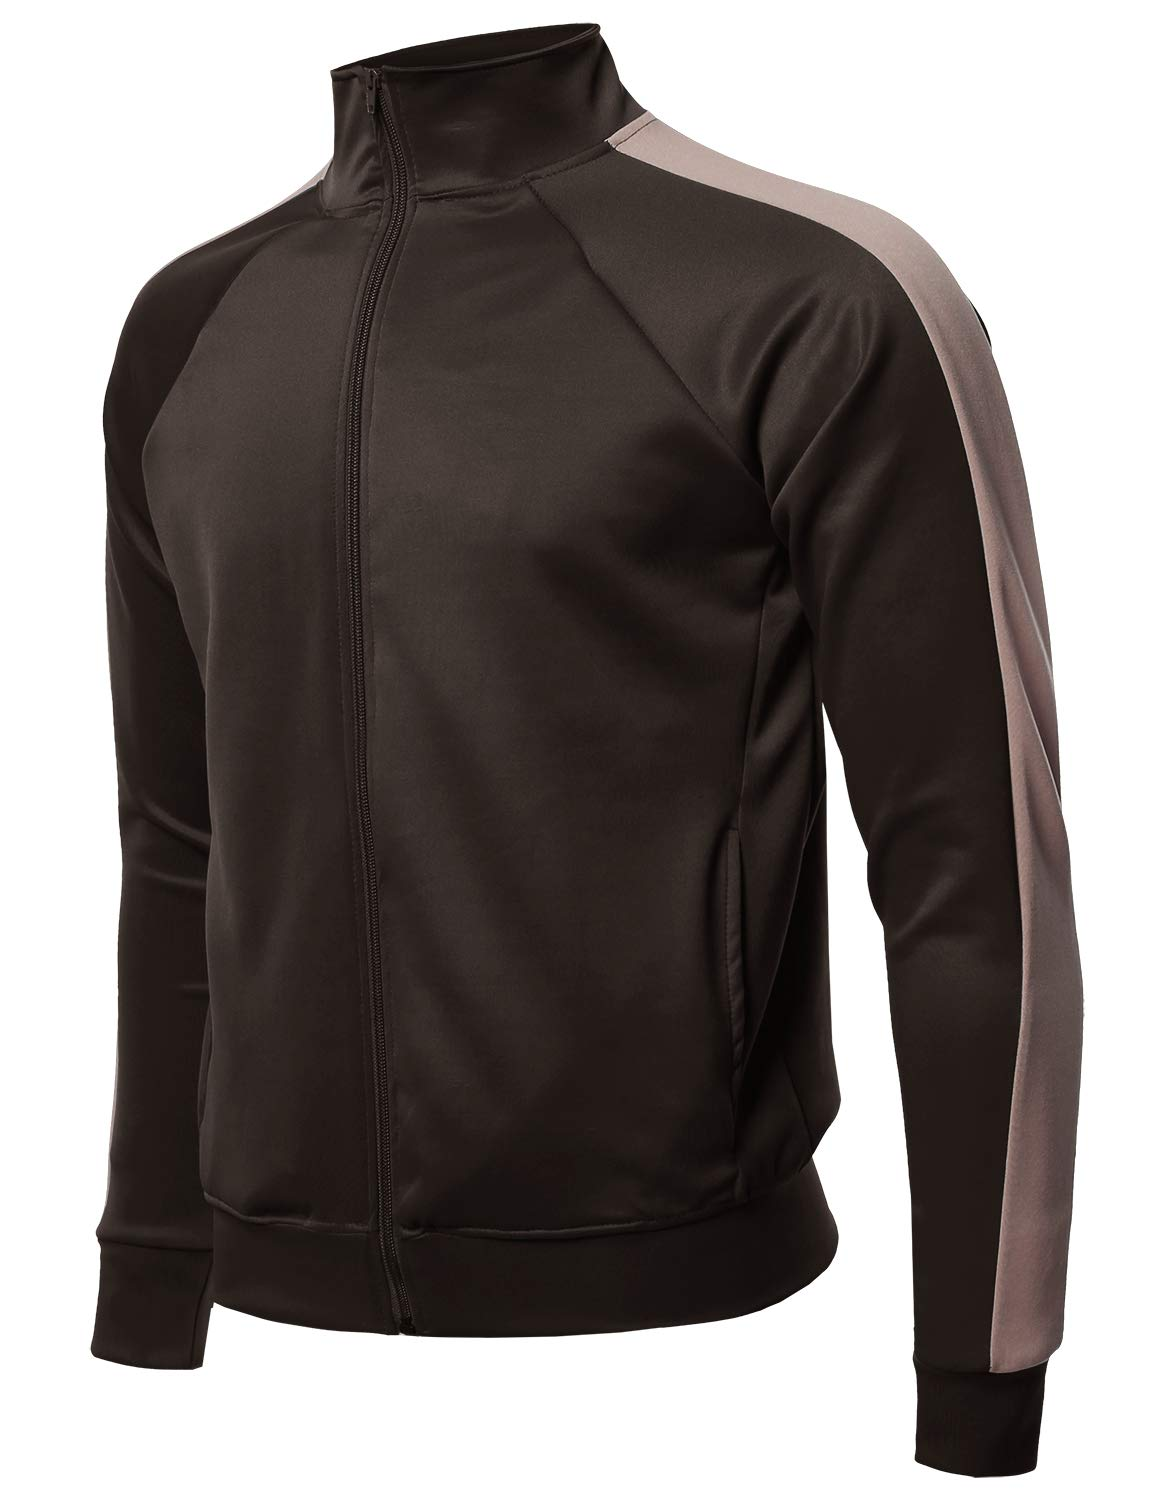 Premium Quality Shoulder Panel Zip-Up Track Jacket Brown Camel XL by Style by William